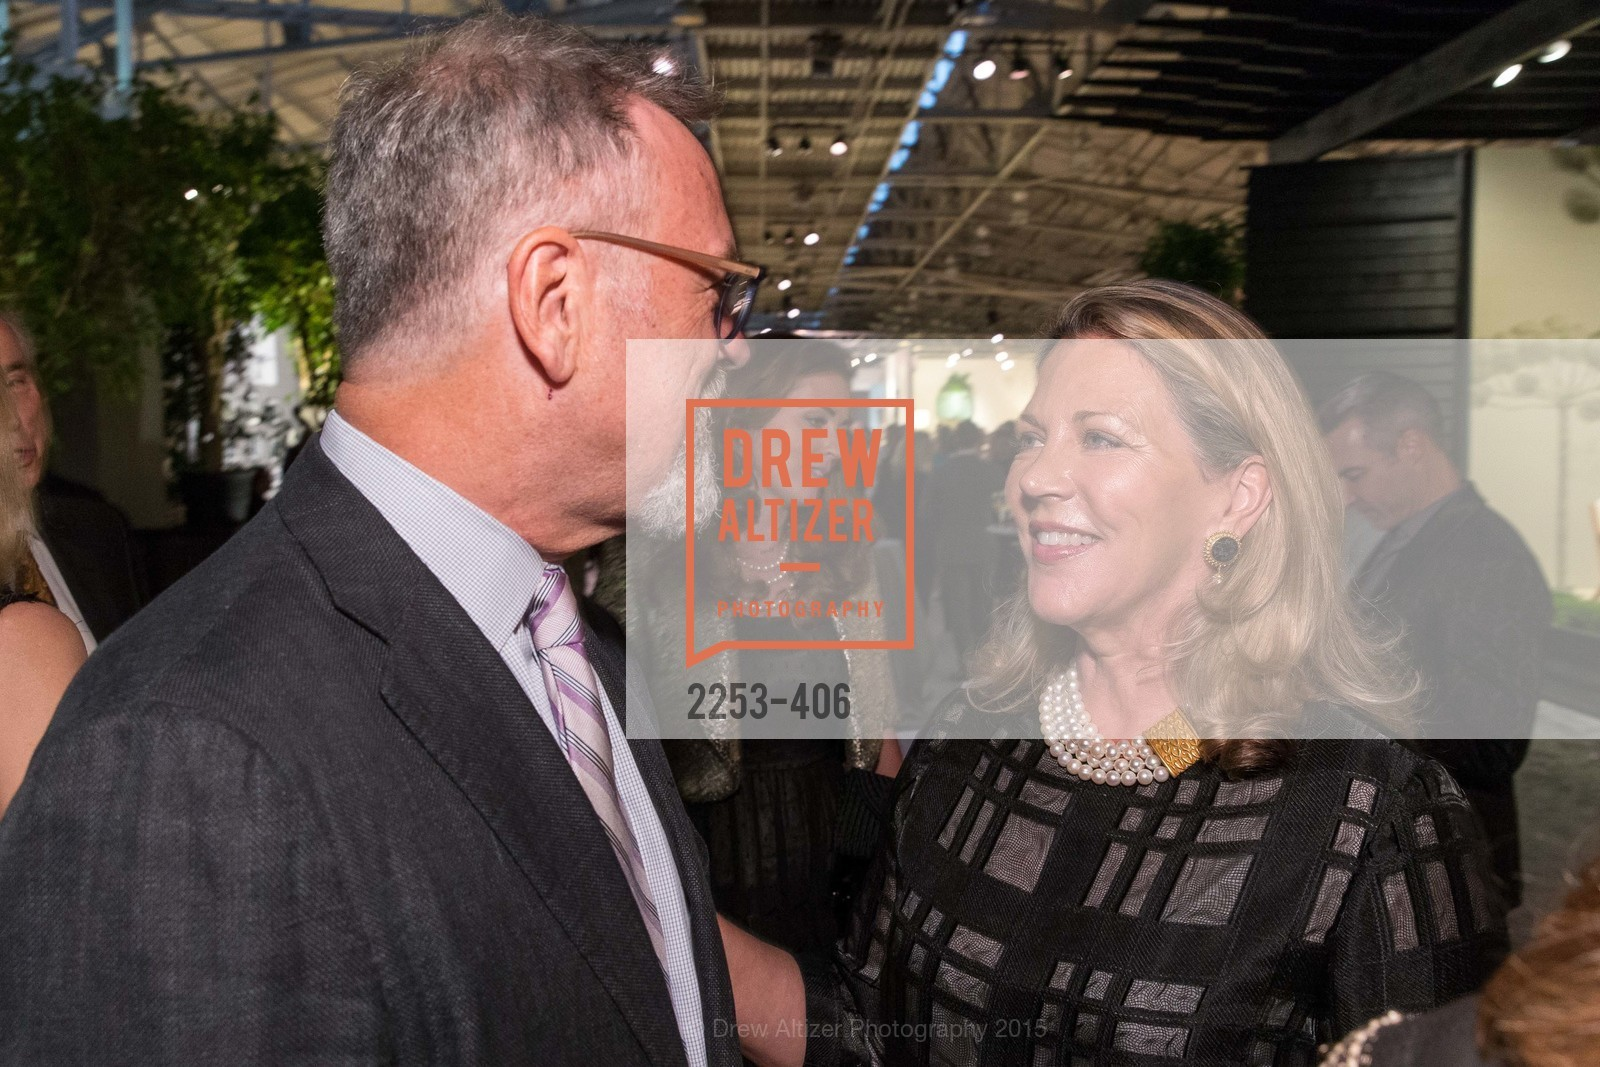 Nion McEvoy, Suzanne Tucker, The San Francisco Fall Antiques Show, Festival Pavilion, Fort Mason, October 21st, 2015,Drew Altizer, Drew Altizer Photography, full-service event agency, private events, San Francisco photographer, photographer California